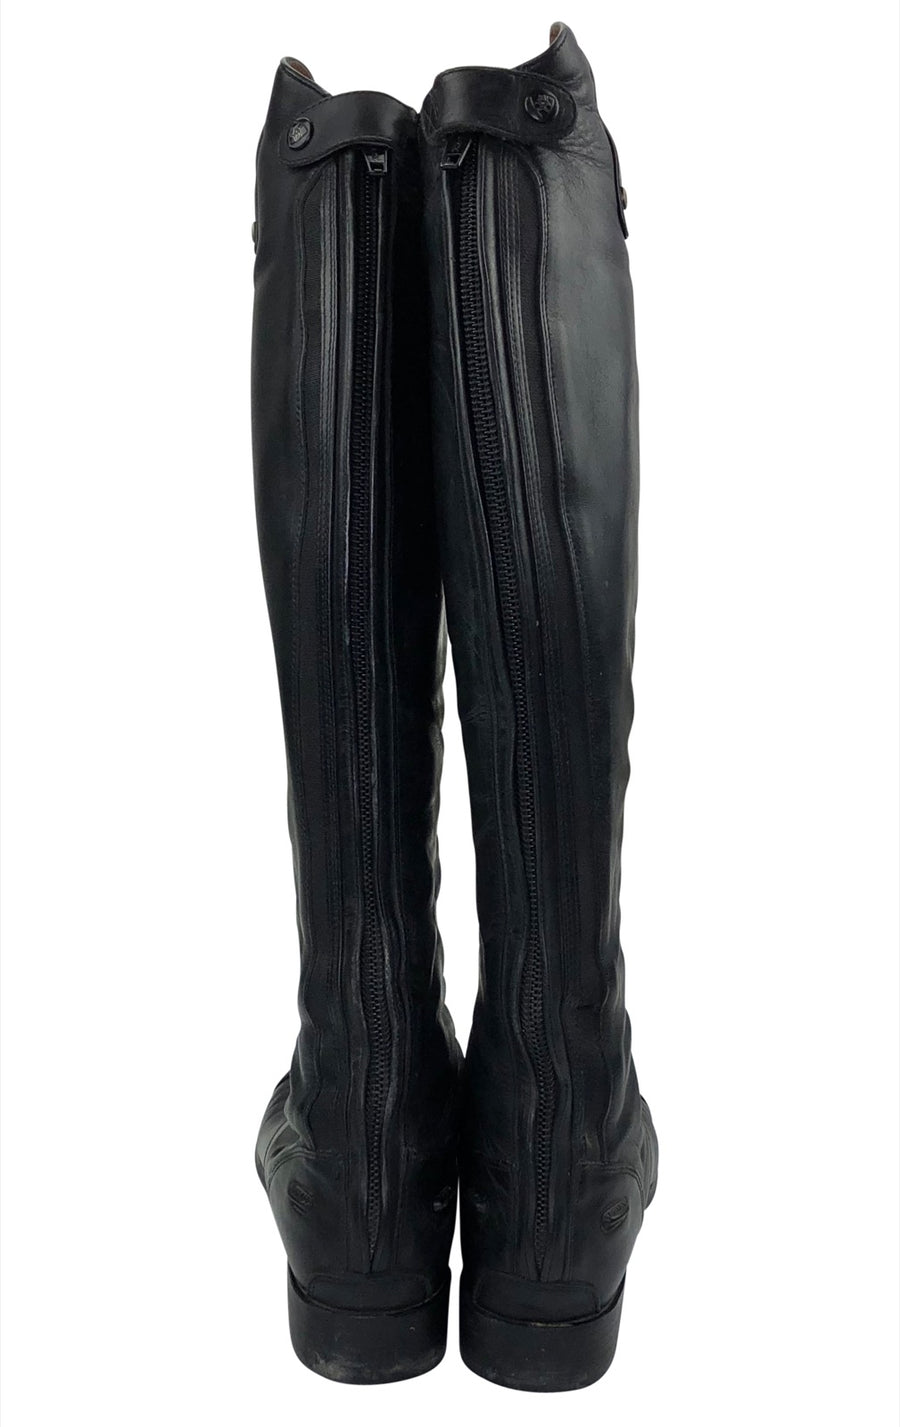 Back of Ariat Heritage Contour Field Zip Tall Riding Boot in Black